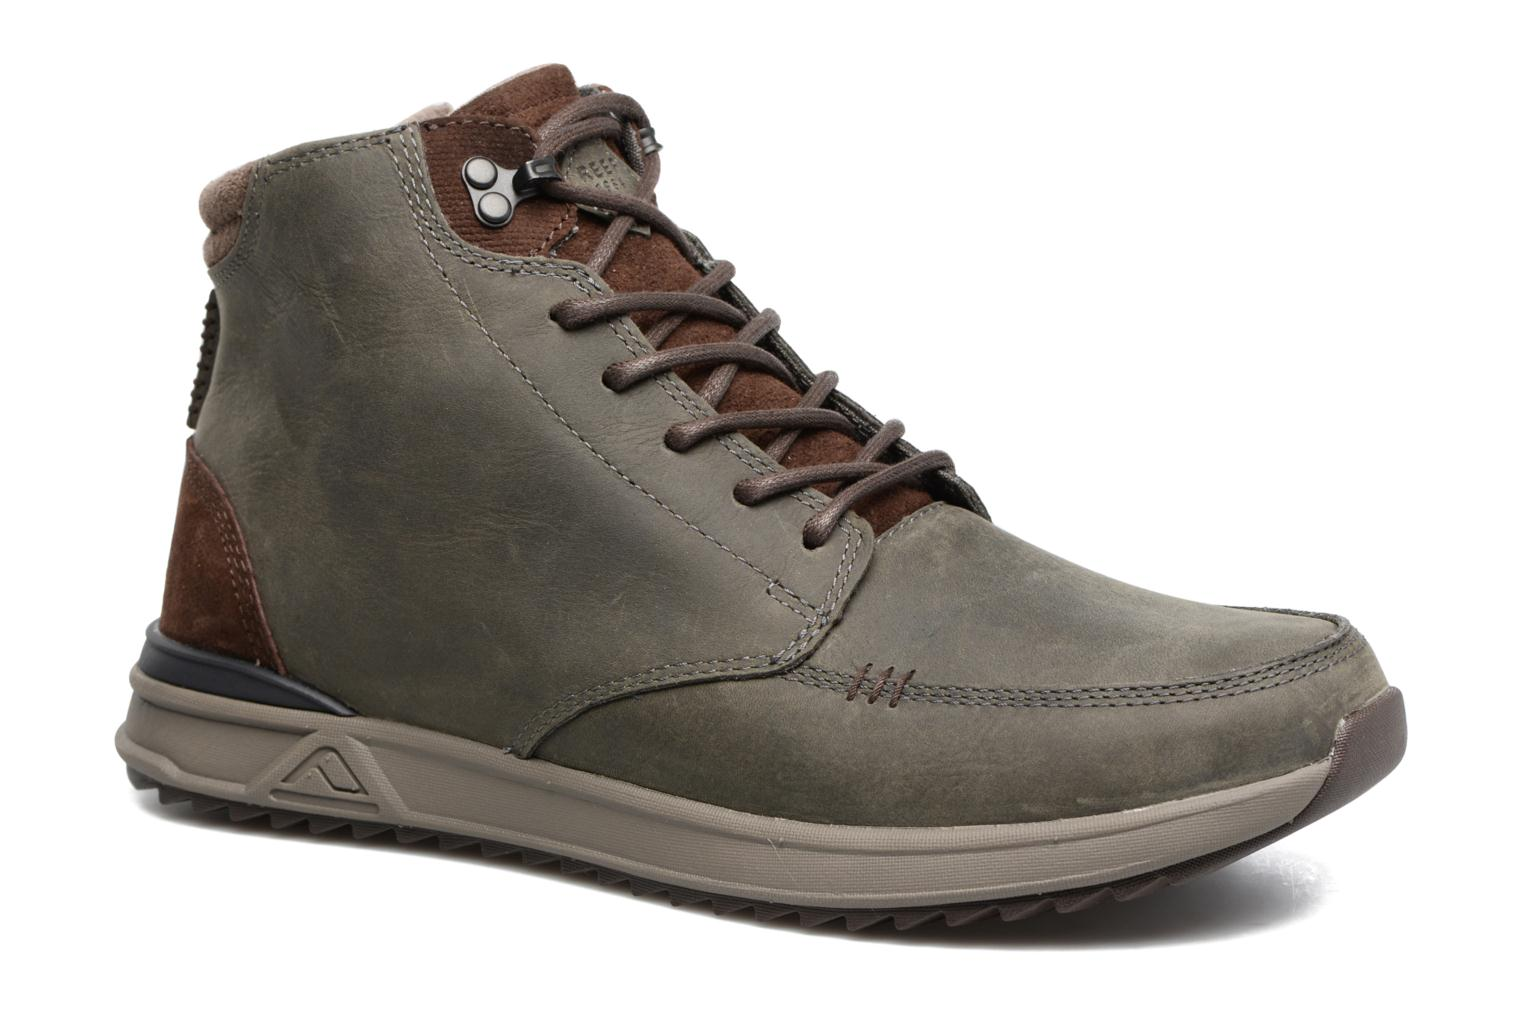 Reef Rover Hi Boot Wt CHARCOAL/BROWN